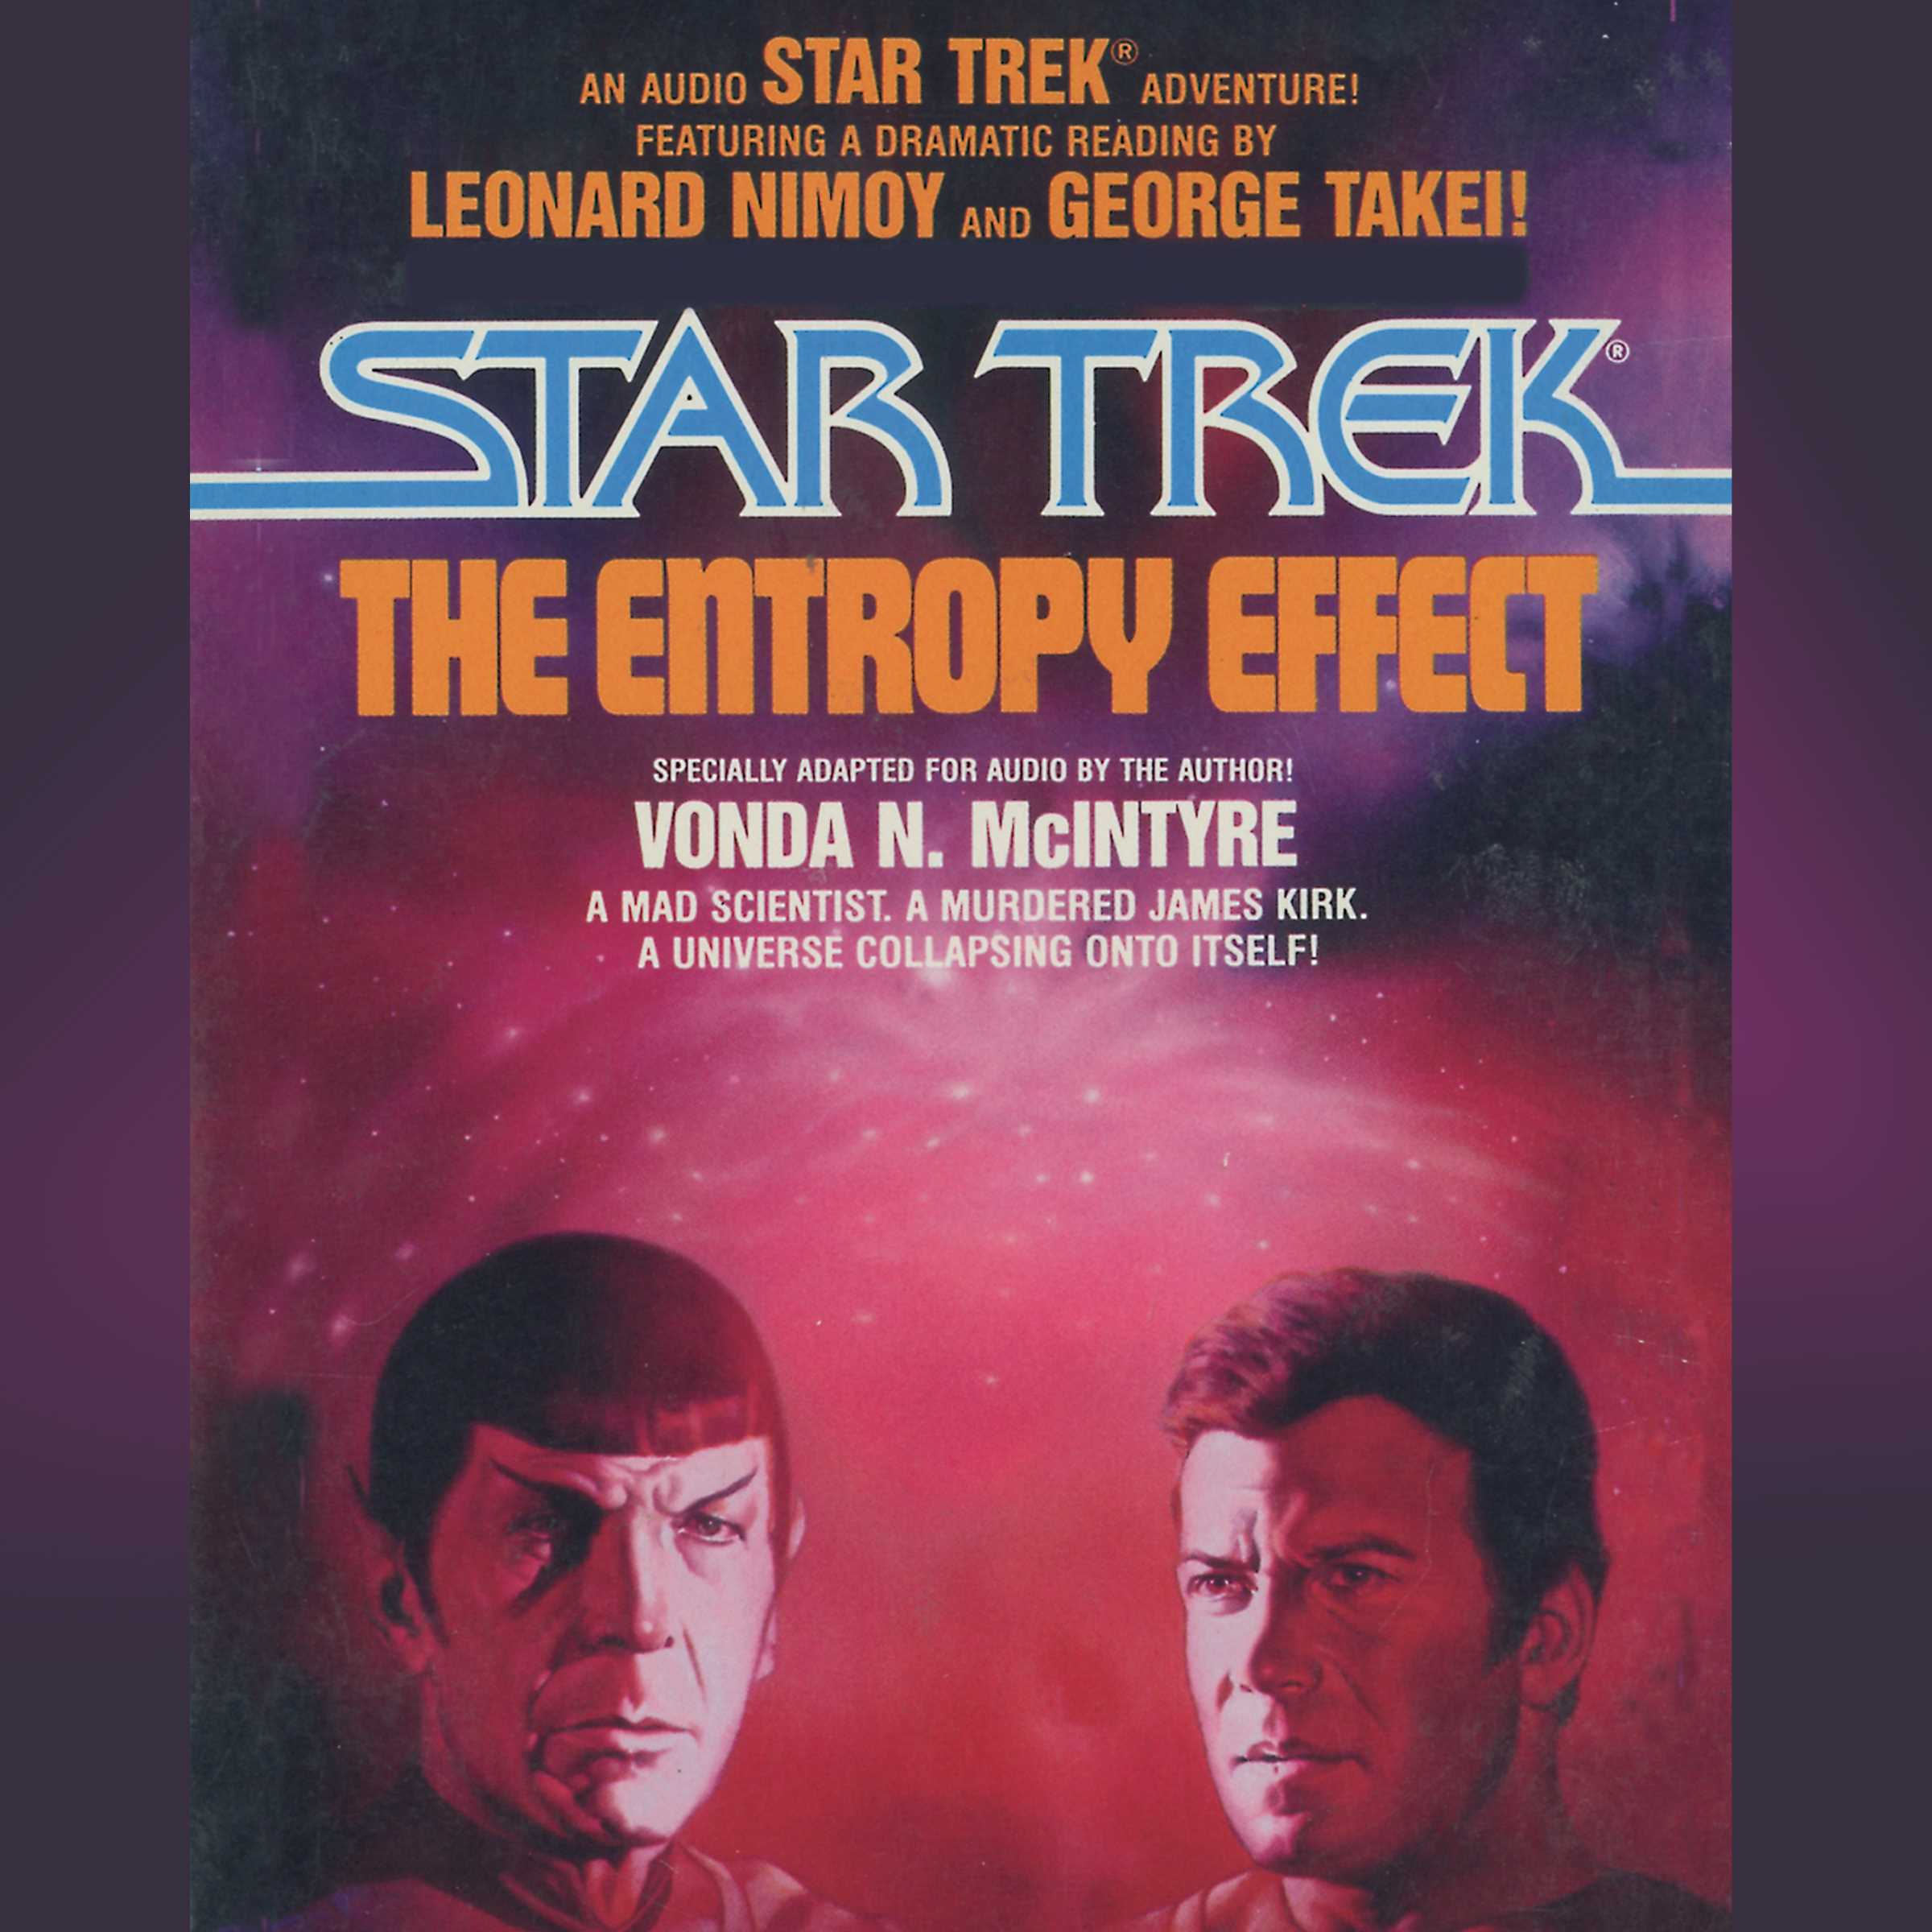 Star trek entropy effect 9780743545365 hr